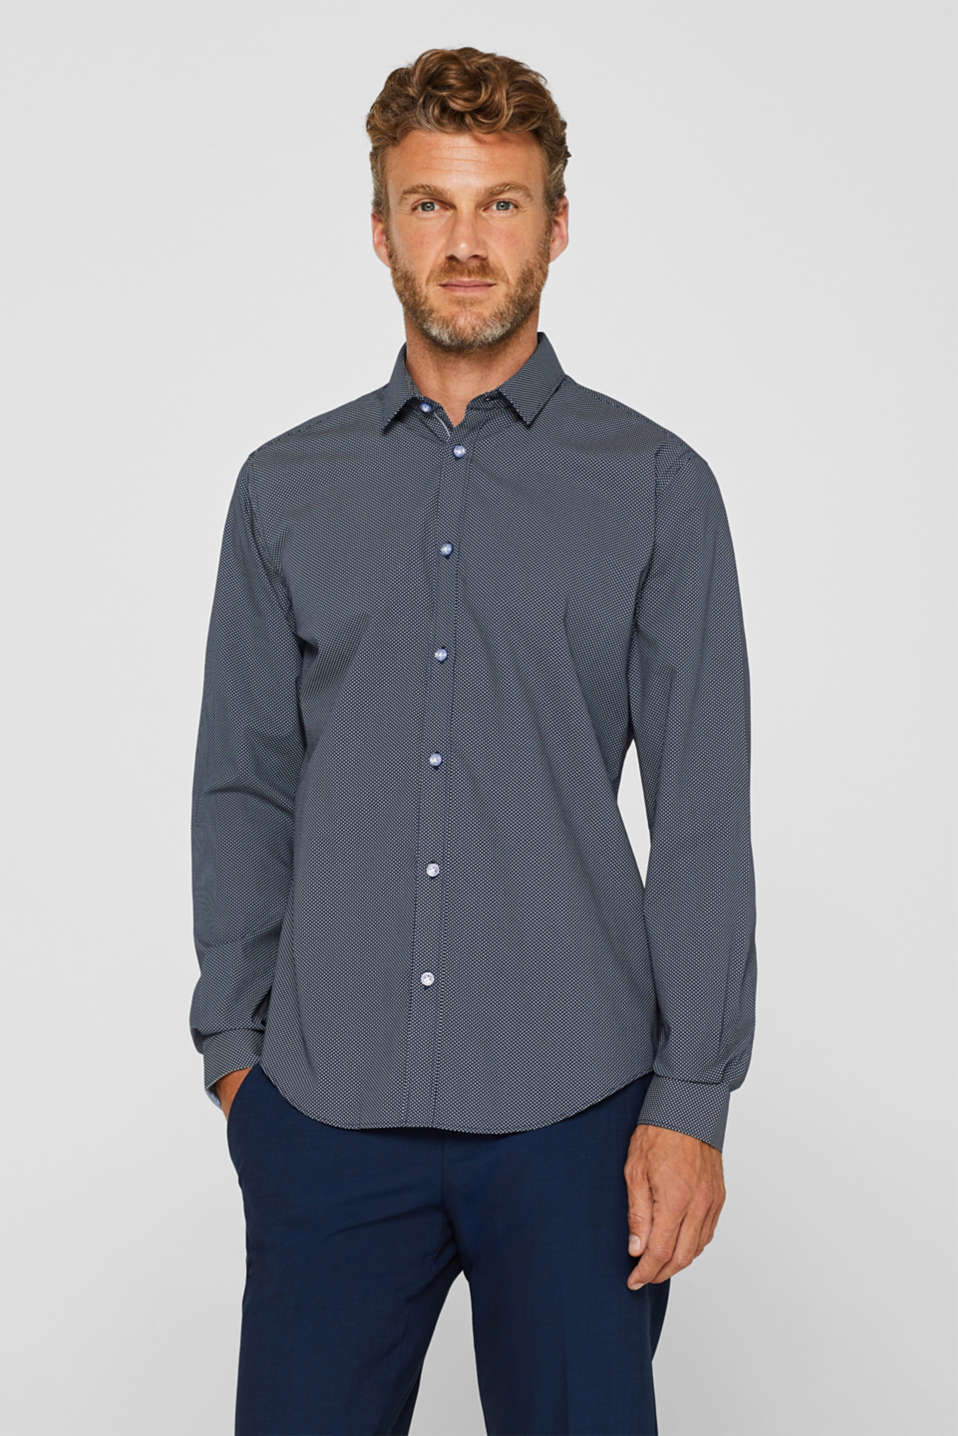 Esprit - Patterned shirt in 100% cotton